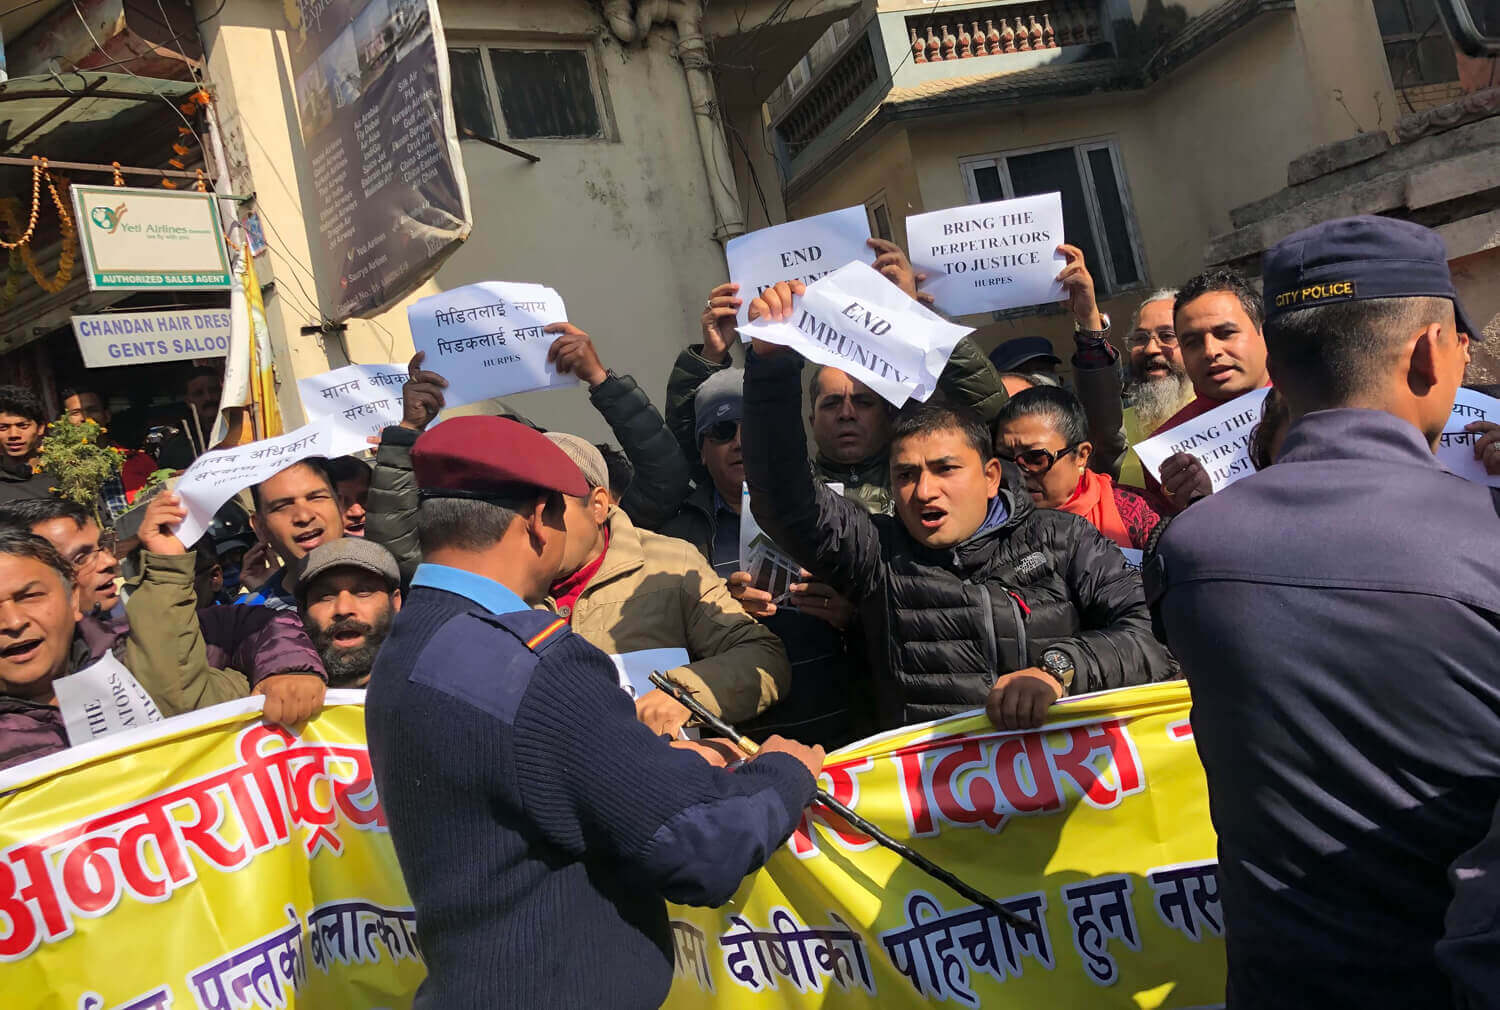 25 activists demanding justice for Nirmala Pant in front of the Prime Minister's residence in Baluwatar were arrested by the police on Monday. Human Right and Peace Society had organised the demonstration to mark annual Human Rights Day on 10 December.